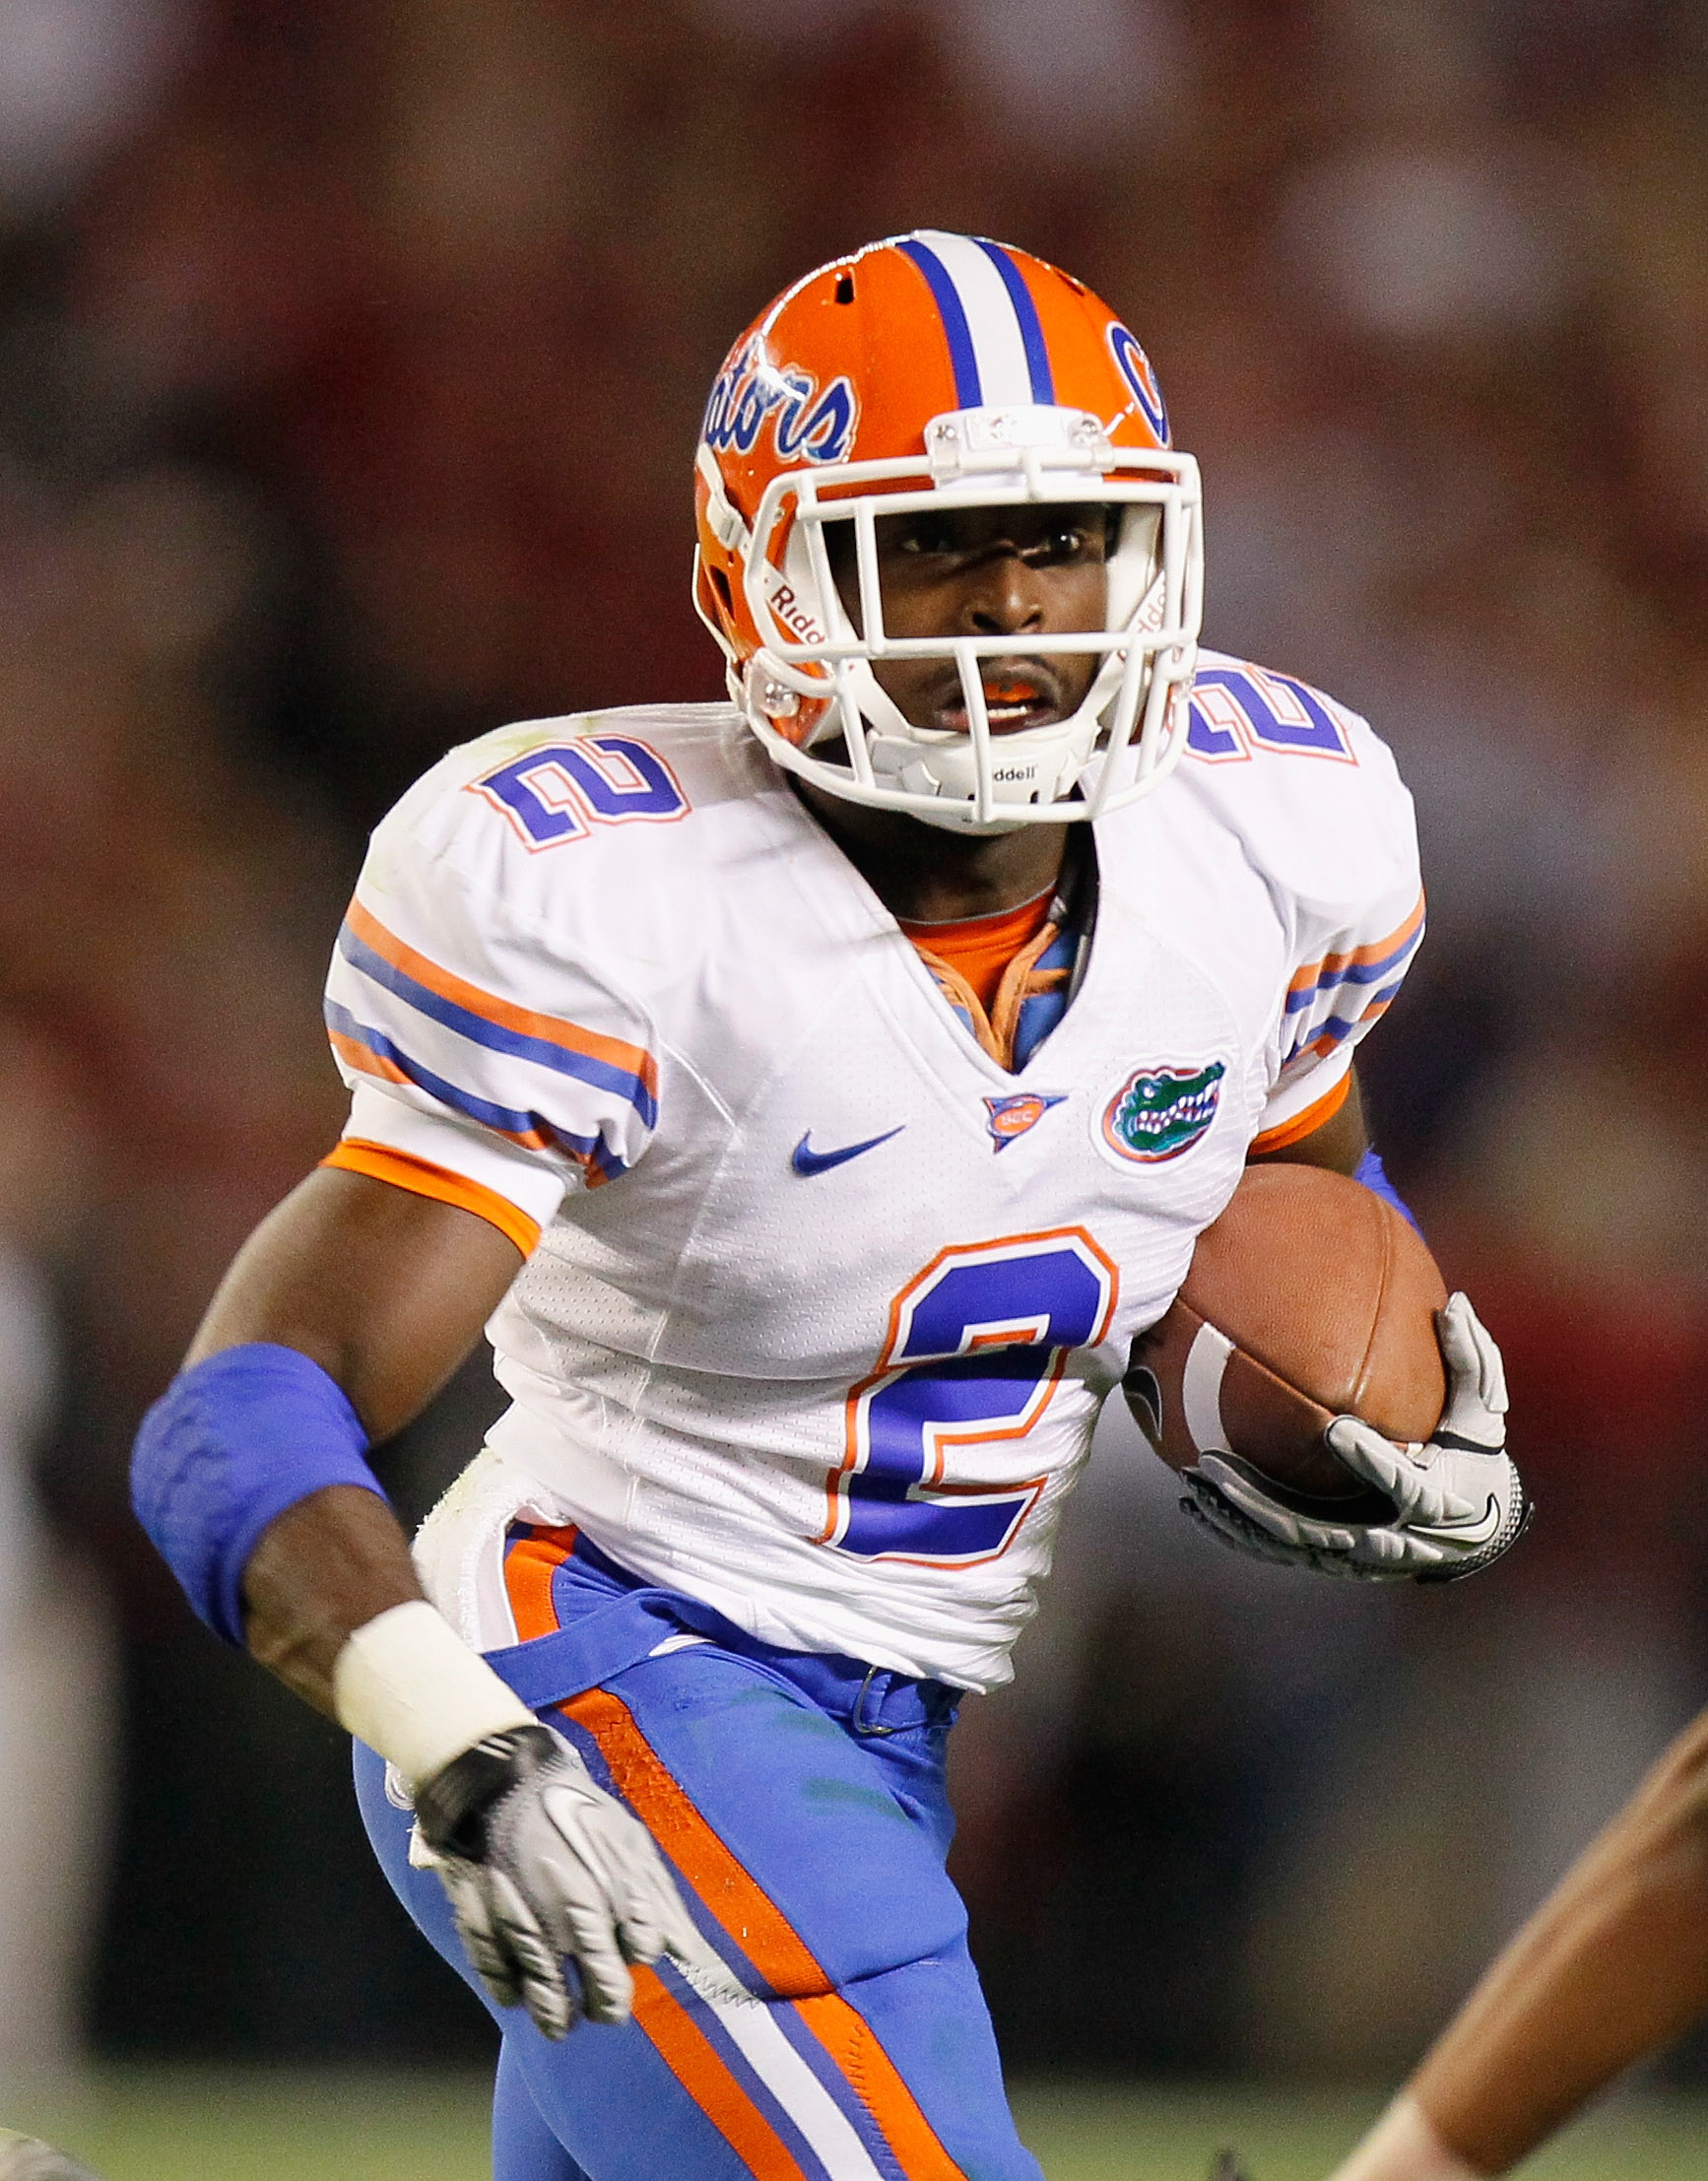 TUSCALOOSA, AL - OCTOBER 02:  Jeffery Demps #2 of the Florida Gators against the Alabama Crimson Tide at Bryant-Denny Stadium on October 2, 2010 in Tuscaloosa, Alabama.  (Photo by Kevin C. Cox/Getty Images)